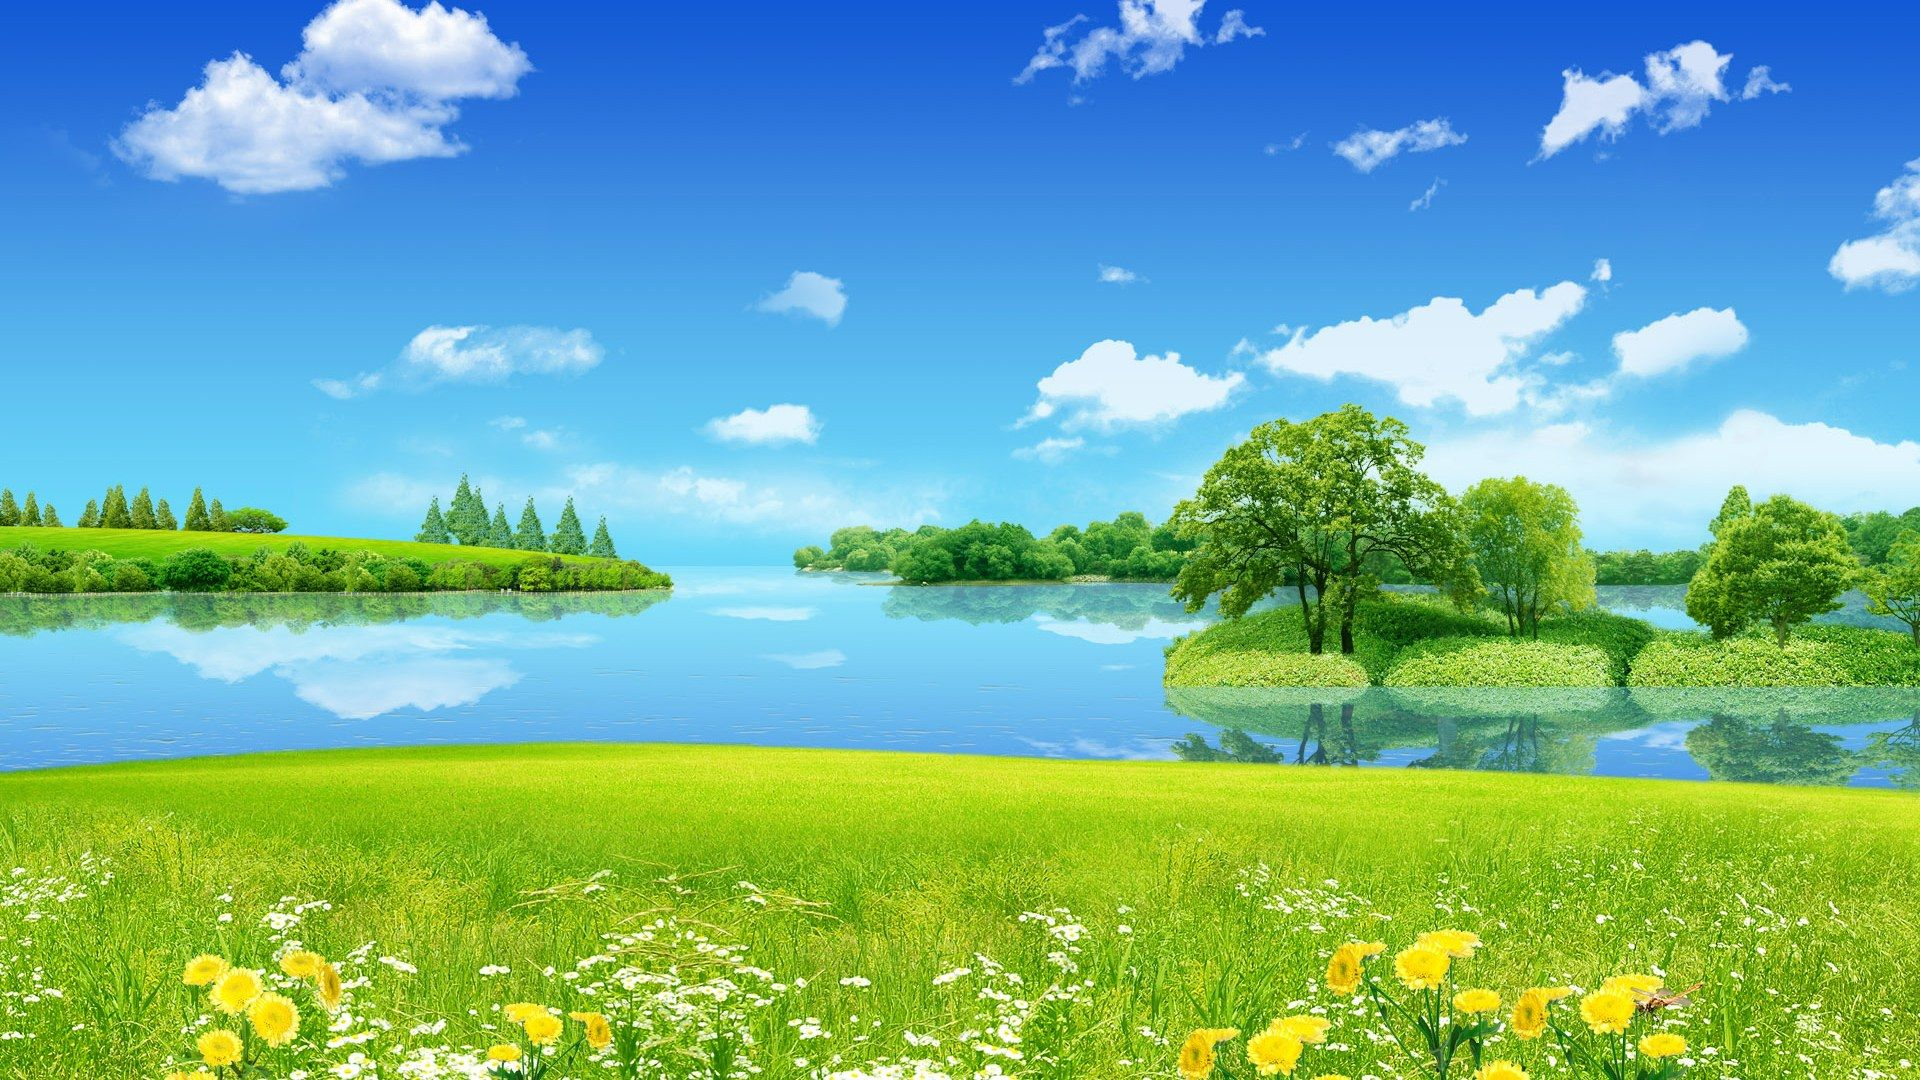 Sunny spring day wallpaper Hd nature wallpapers Beautiful 1920x1080